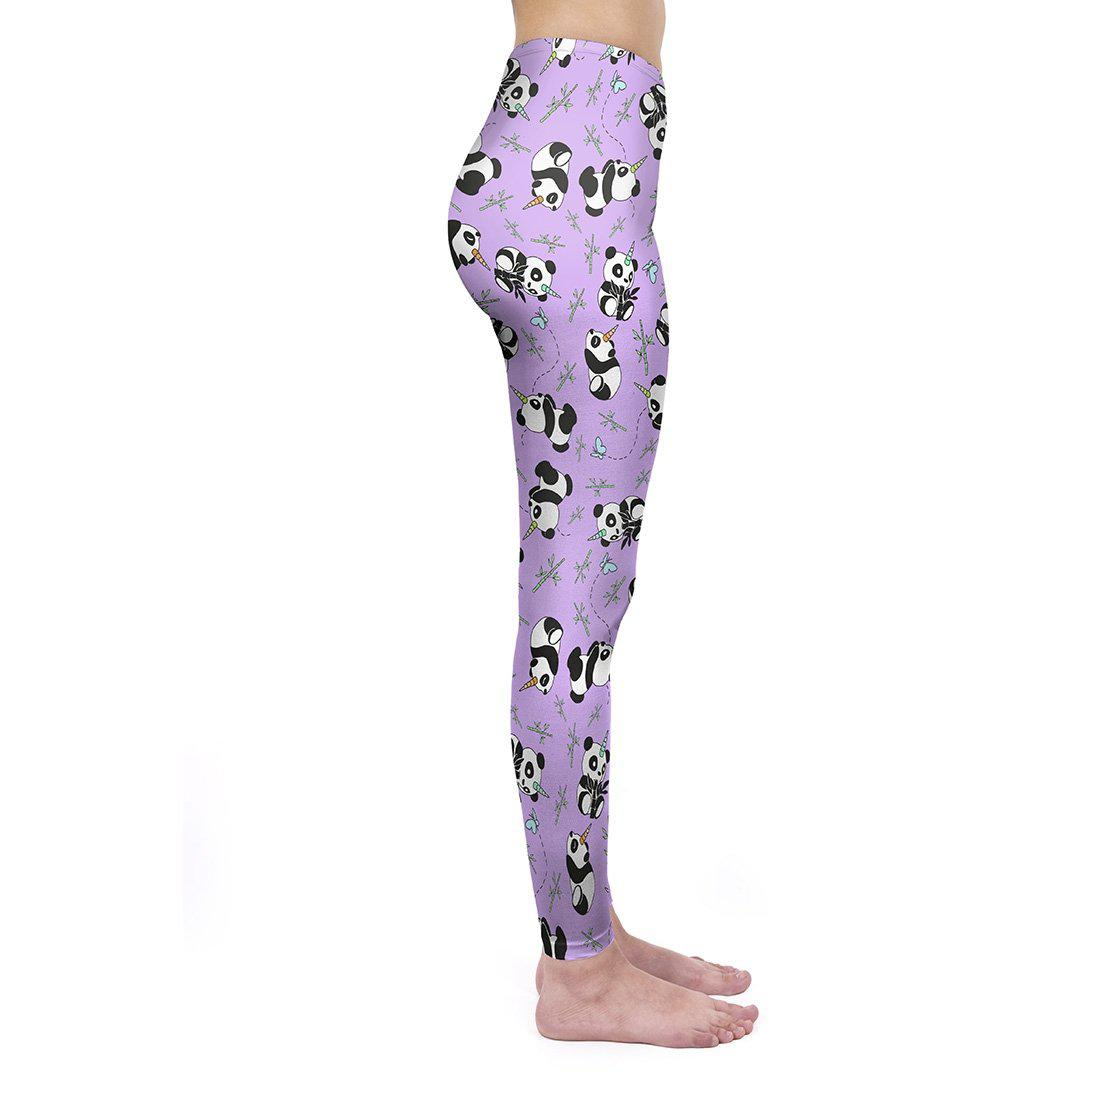 Pandacorn Regular Leggings